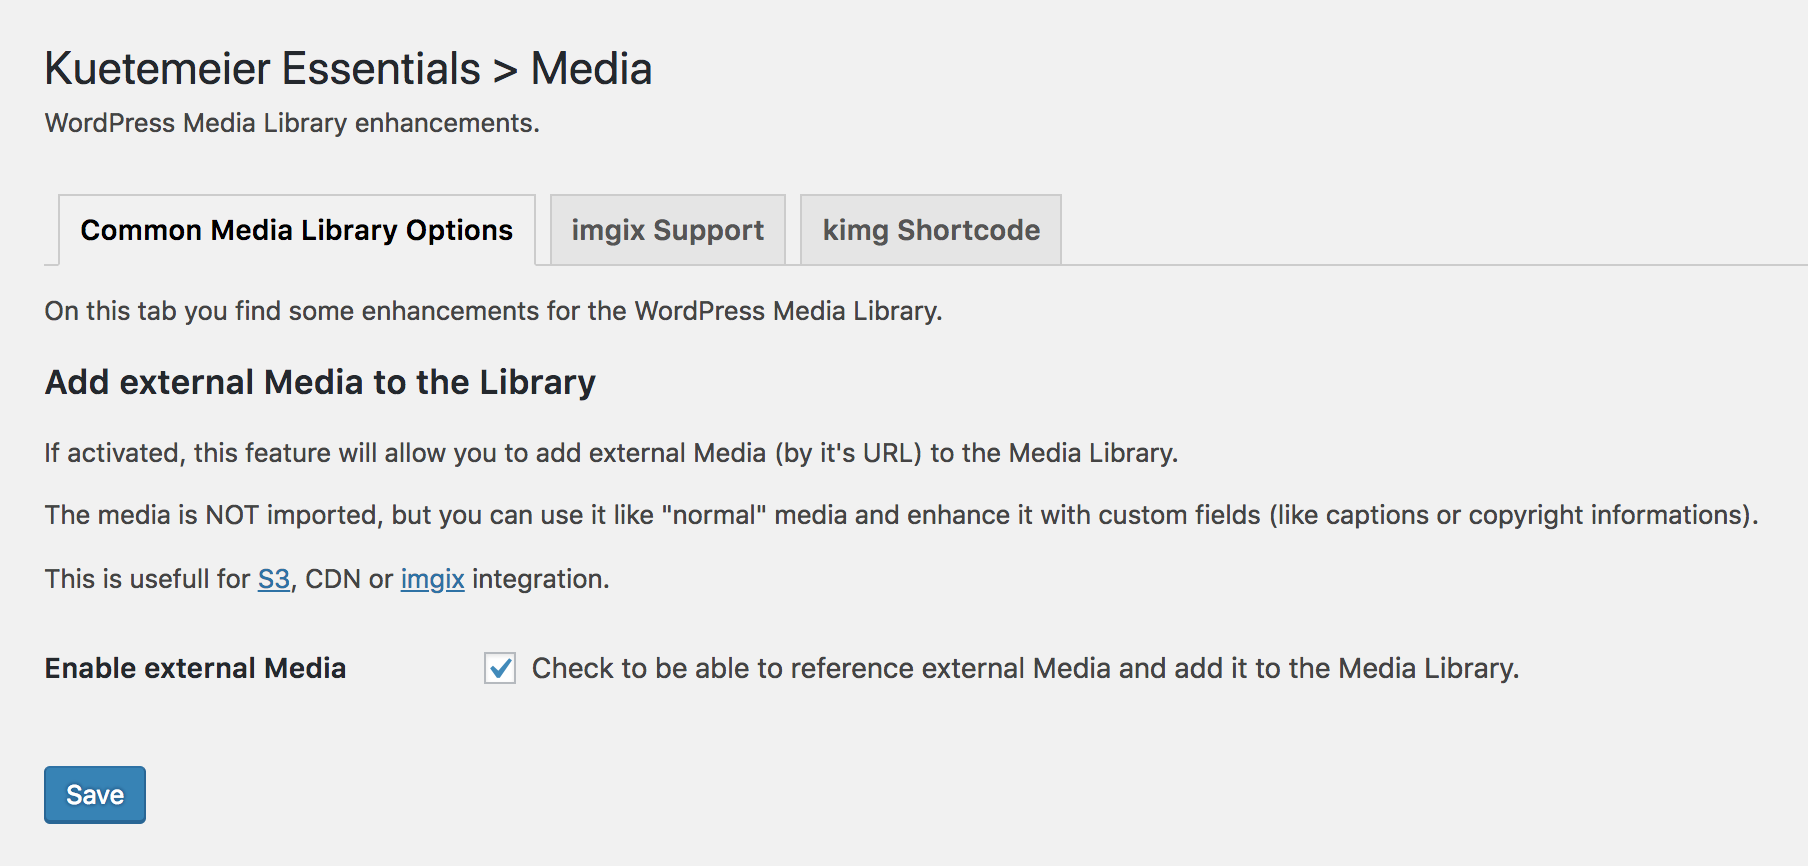 Use referenced external Media like normal ones in your Media Library